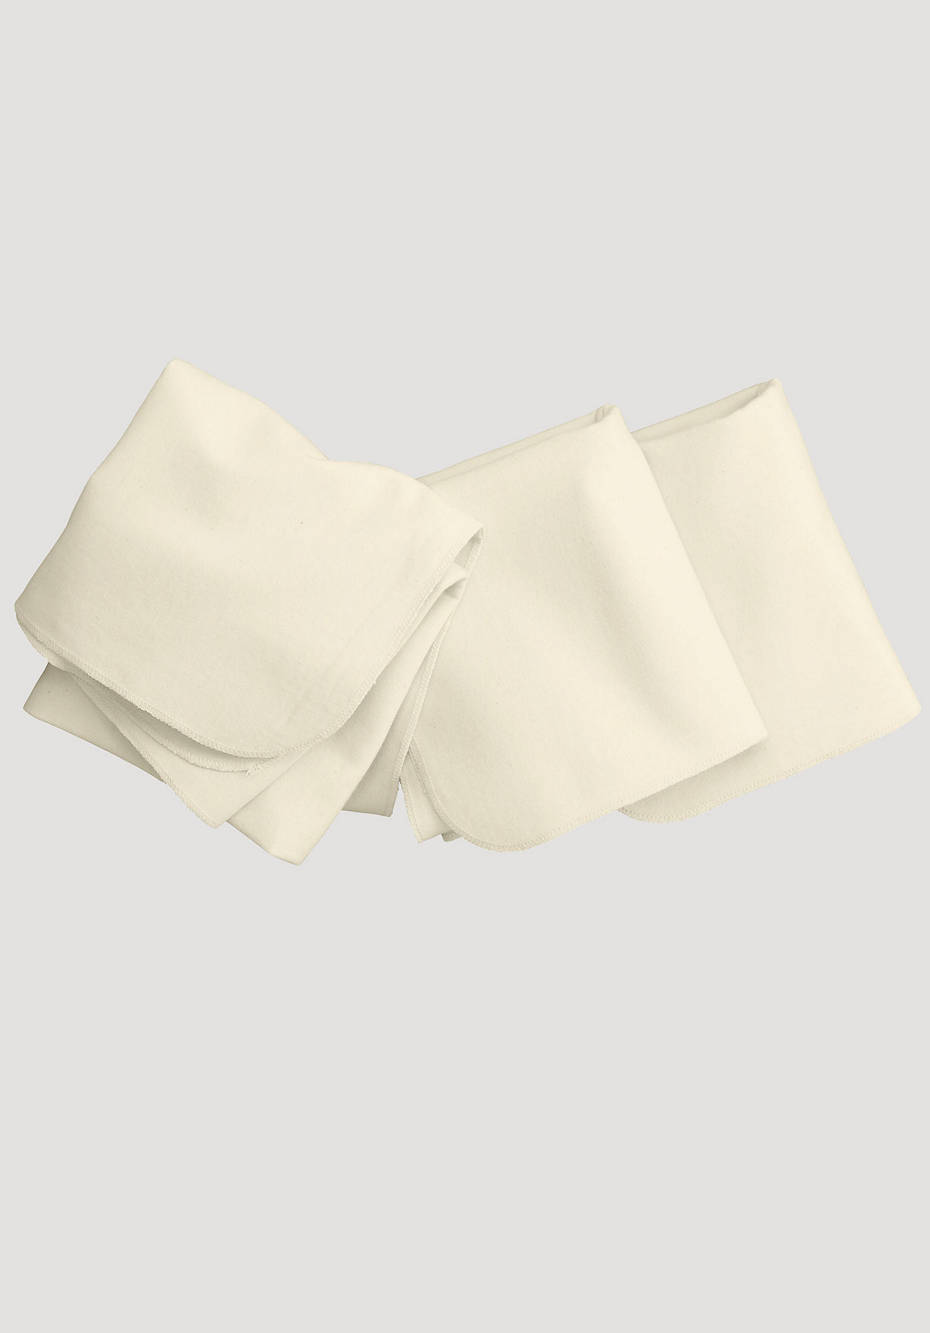 Molton cloth 3-pack made of pure organic cotton